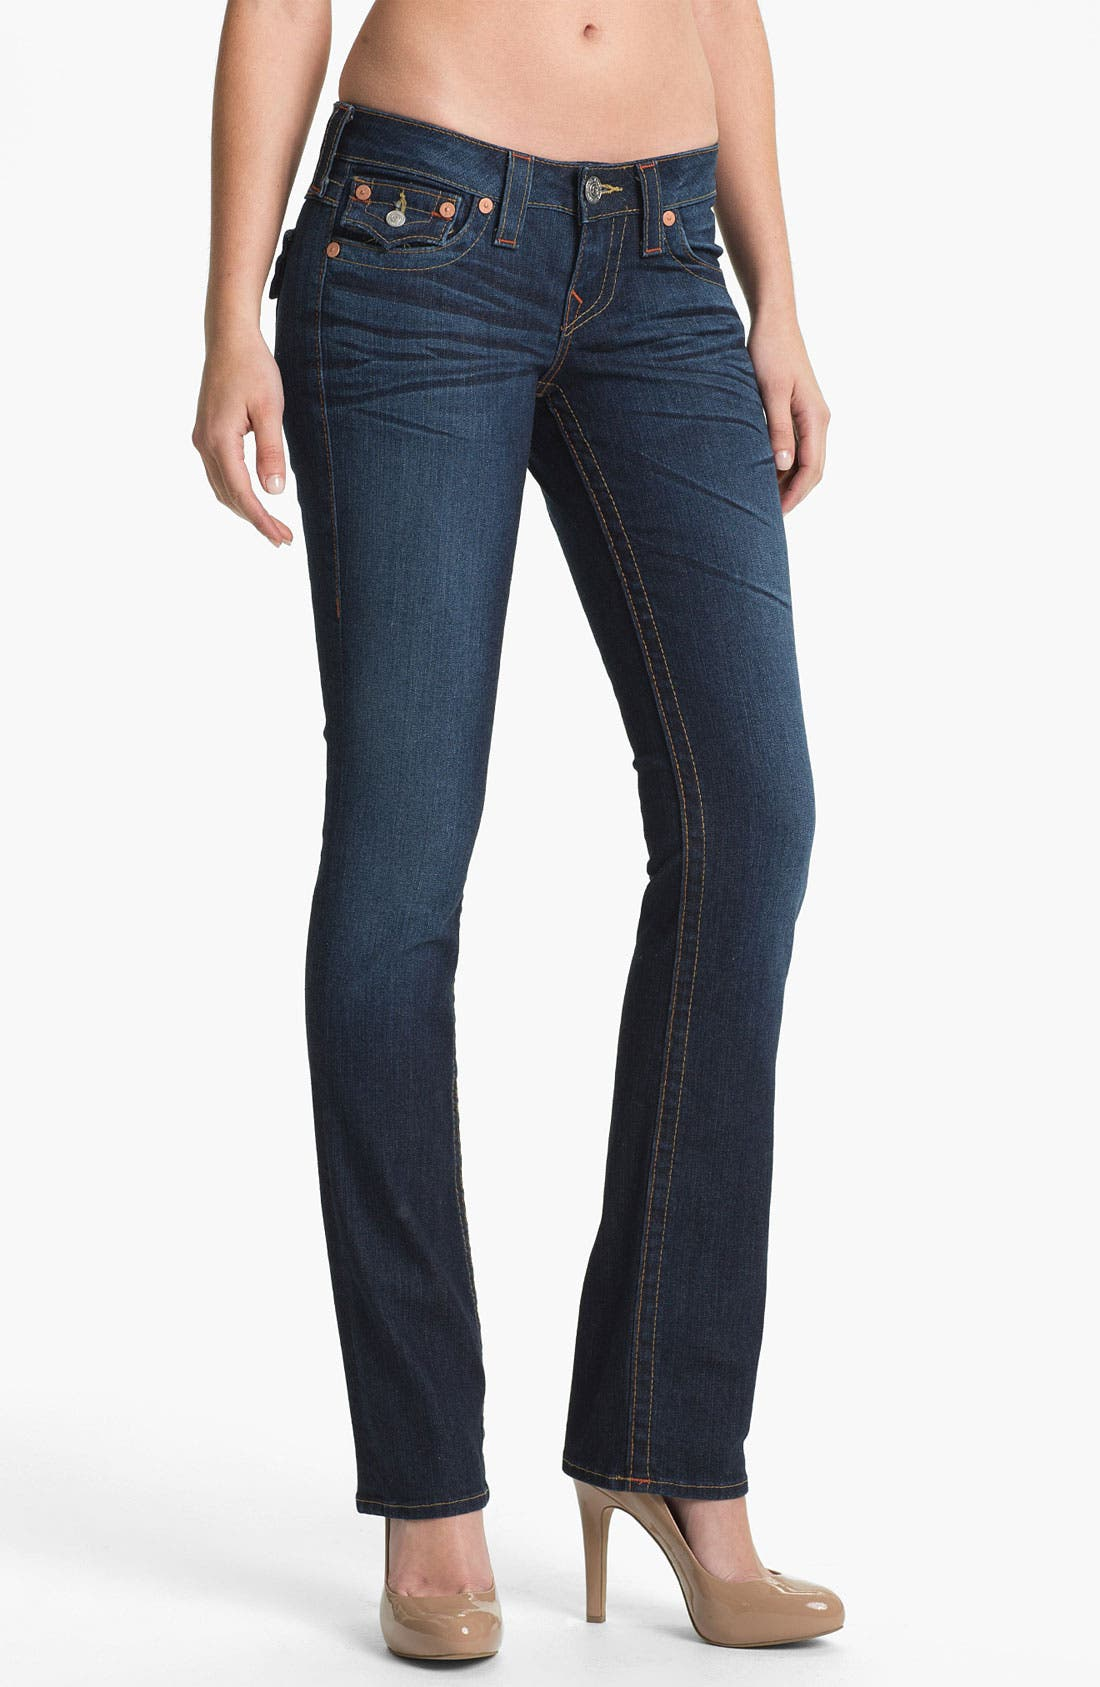 Alternate Image 1 Selected - True Religion Brand Jeans 'Billy' Straight Leg Stretch Jeans (Last Chance)